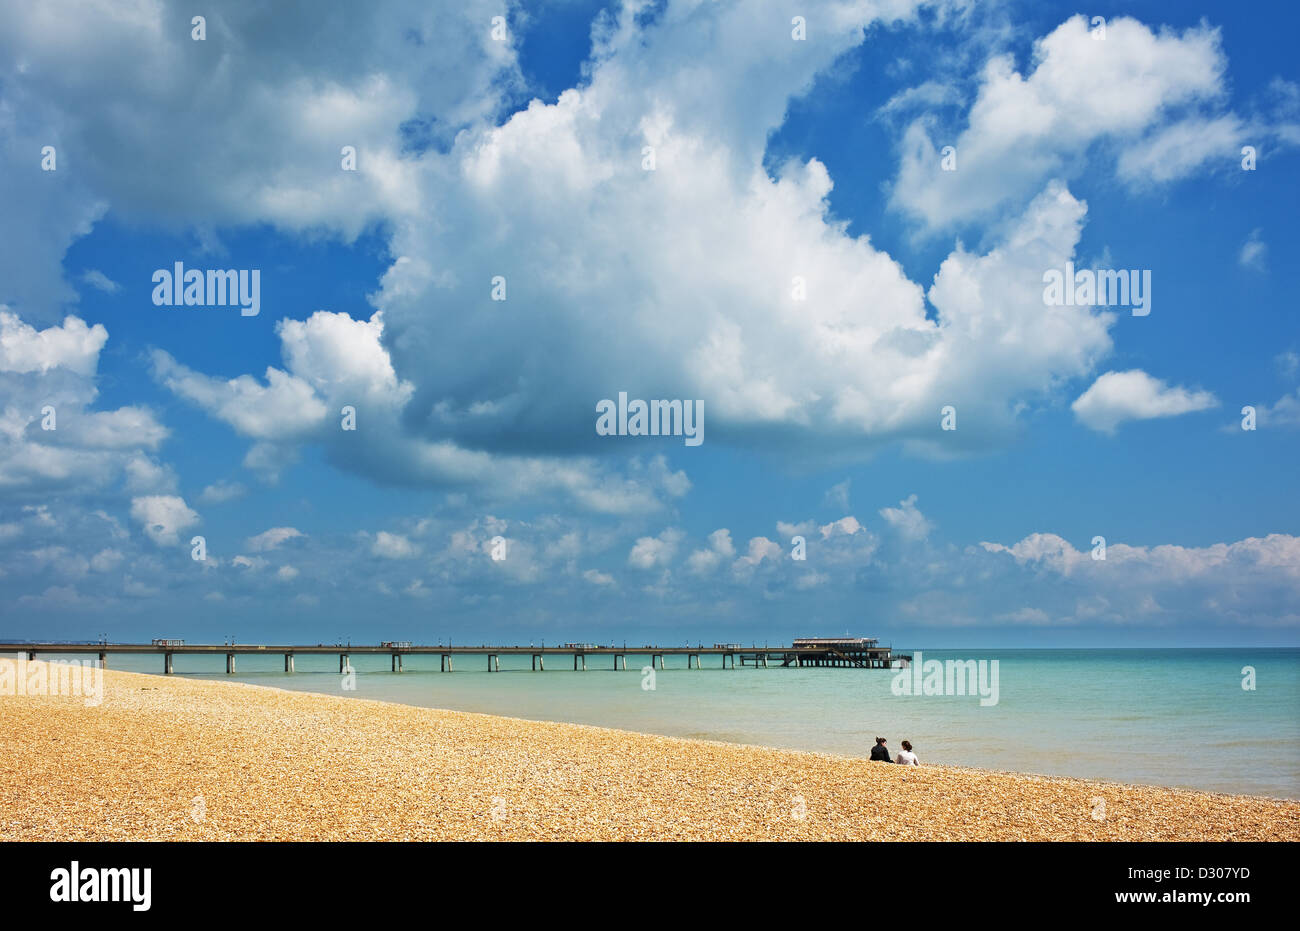 Deal beach and pier, Deal, Kent - Stock Image